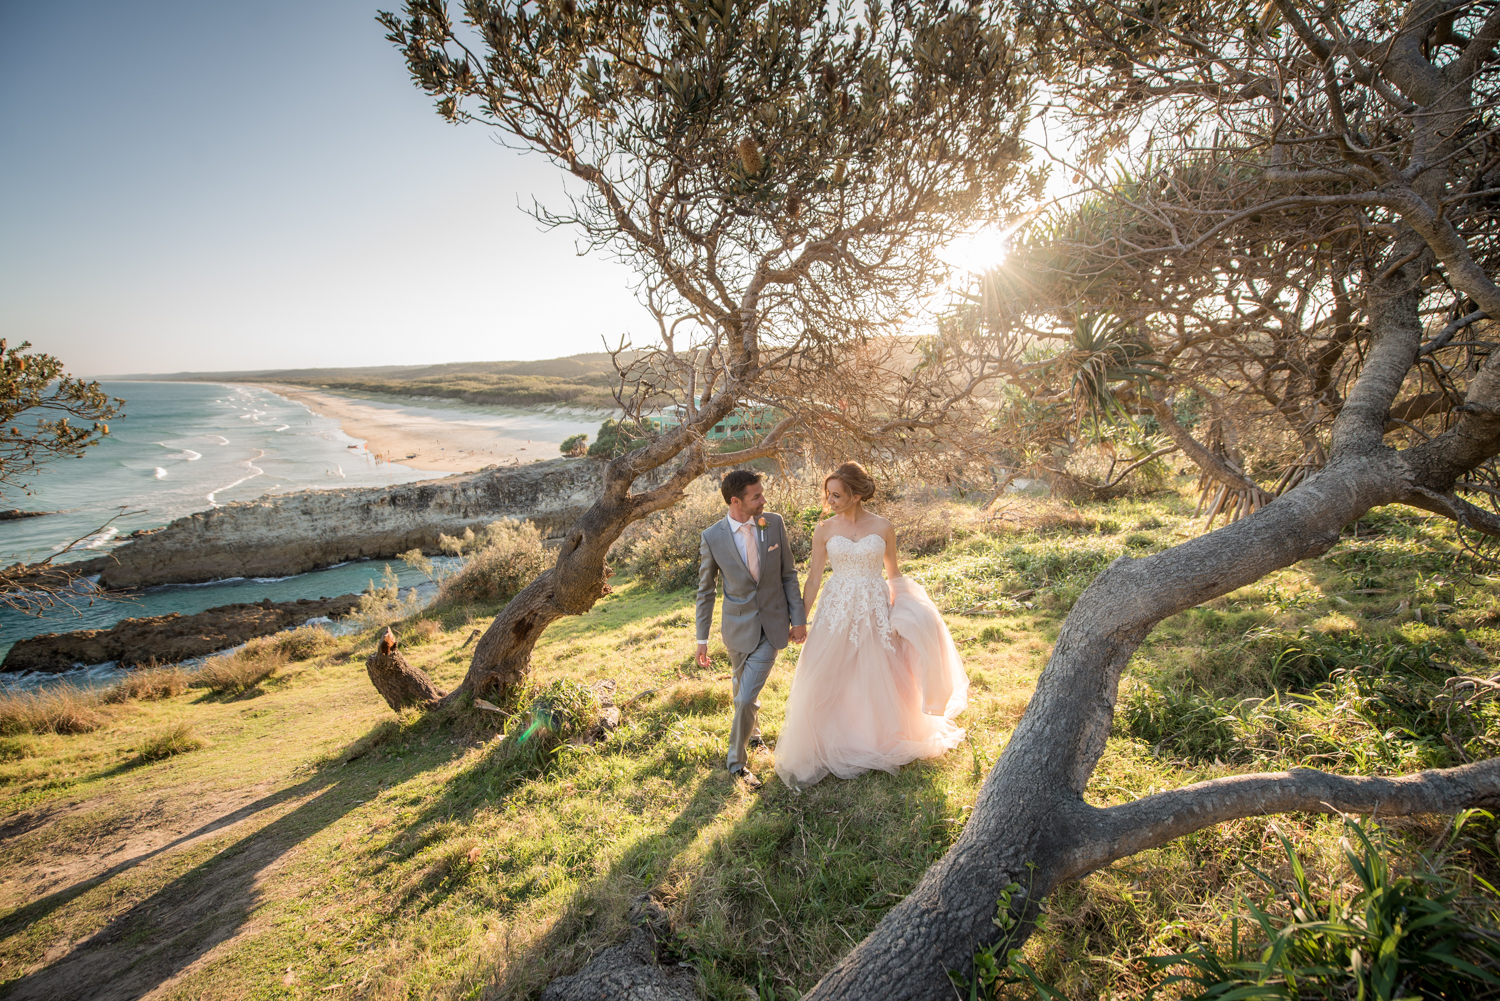 newlyweds with a view over South Gorge